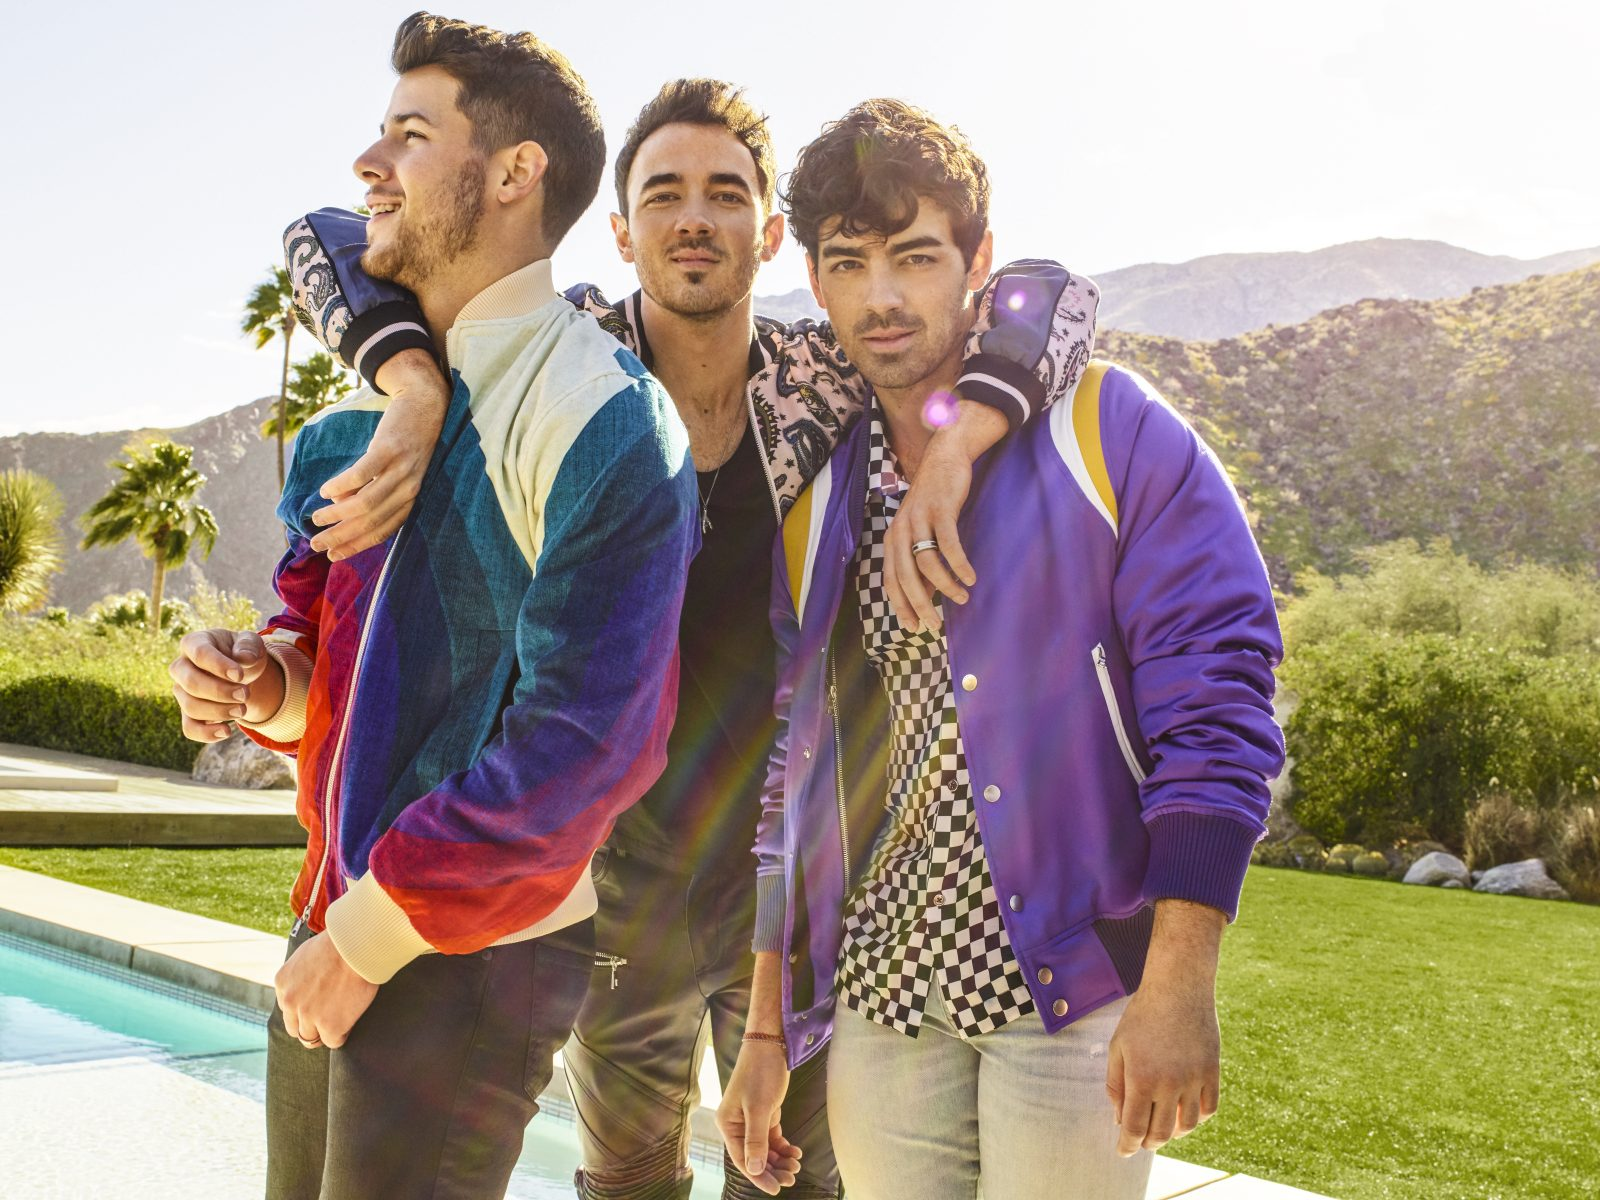 The Jonas Brothers are back together and headed out on the road with a stop planned for Buffalo. (Photo by Peggy Sirota)